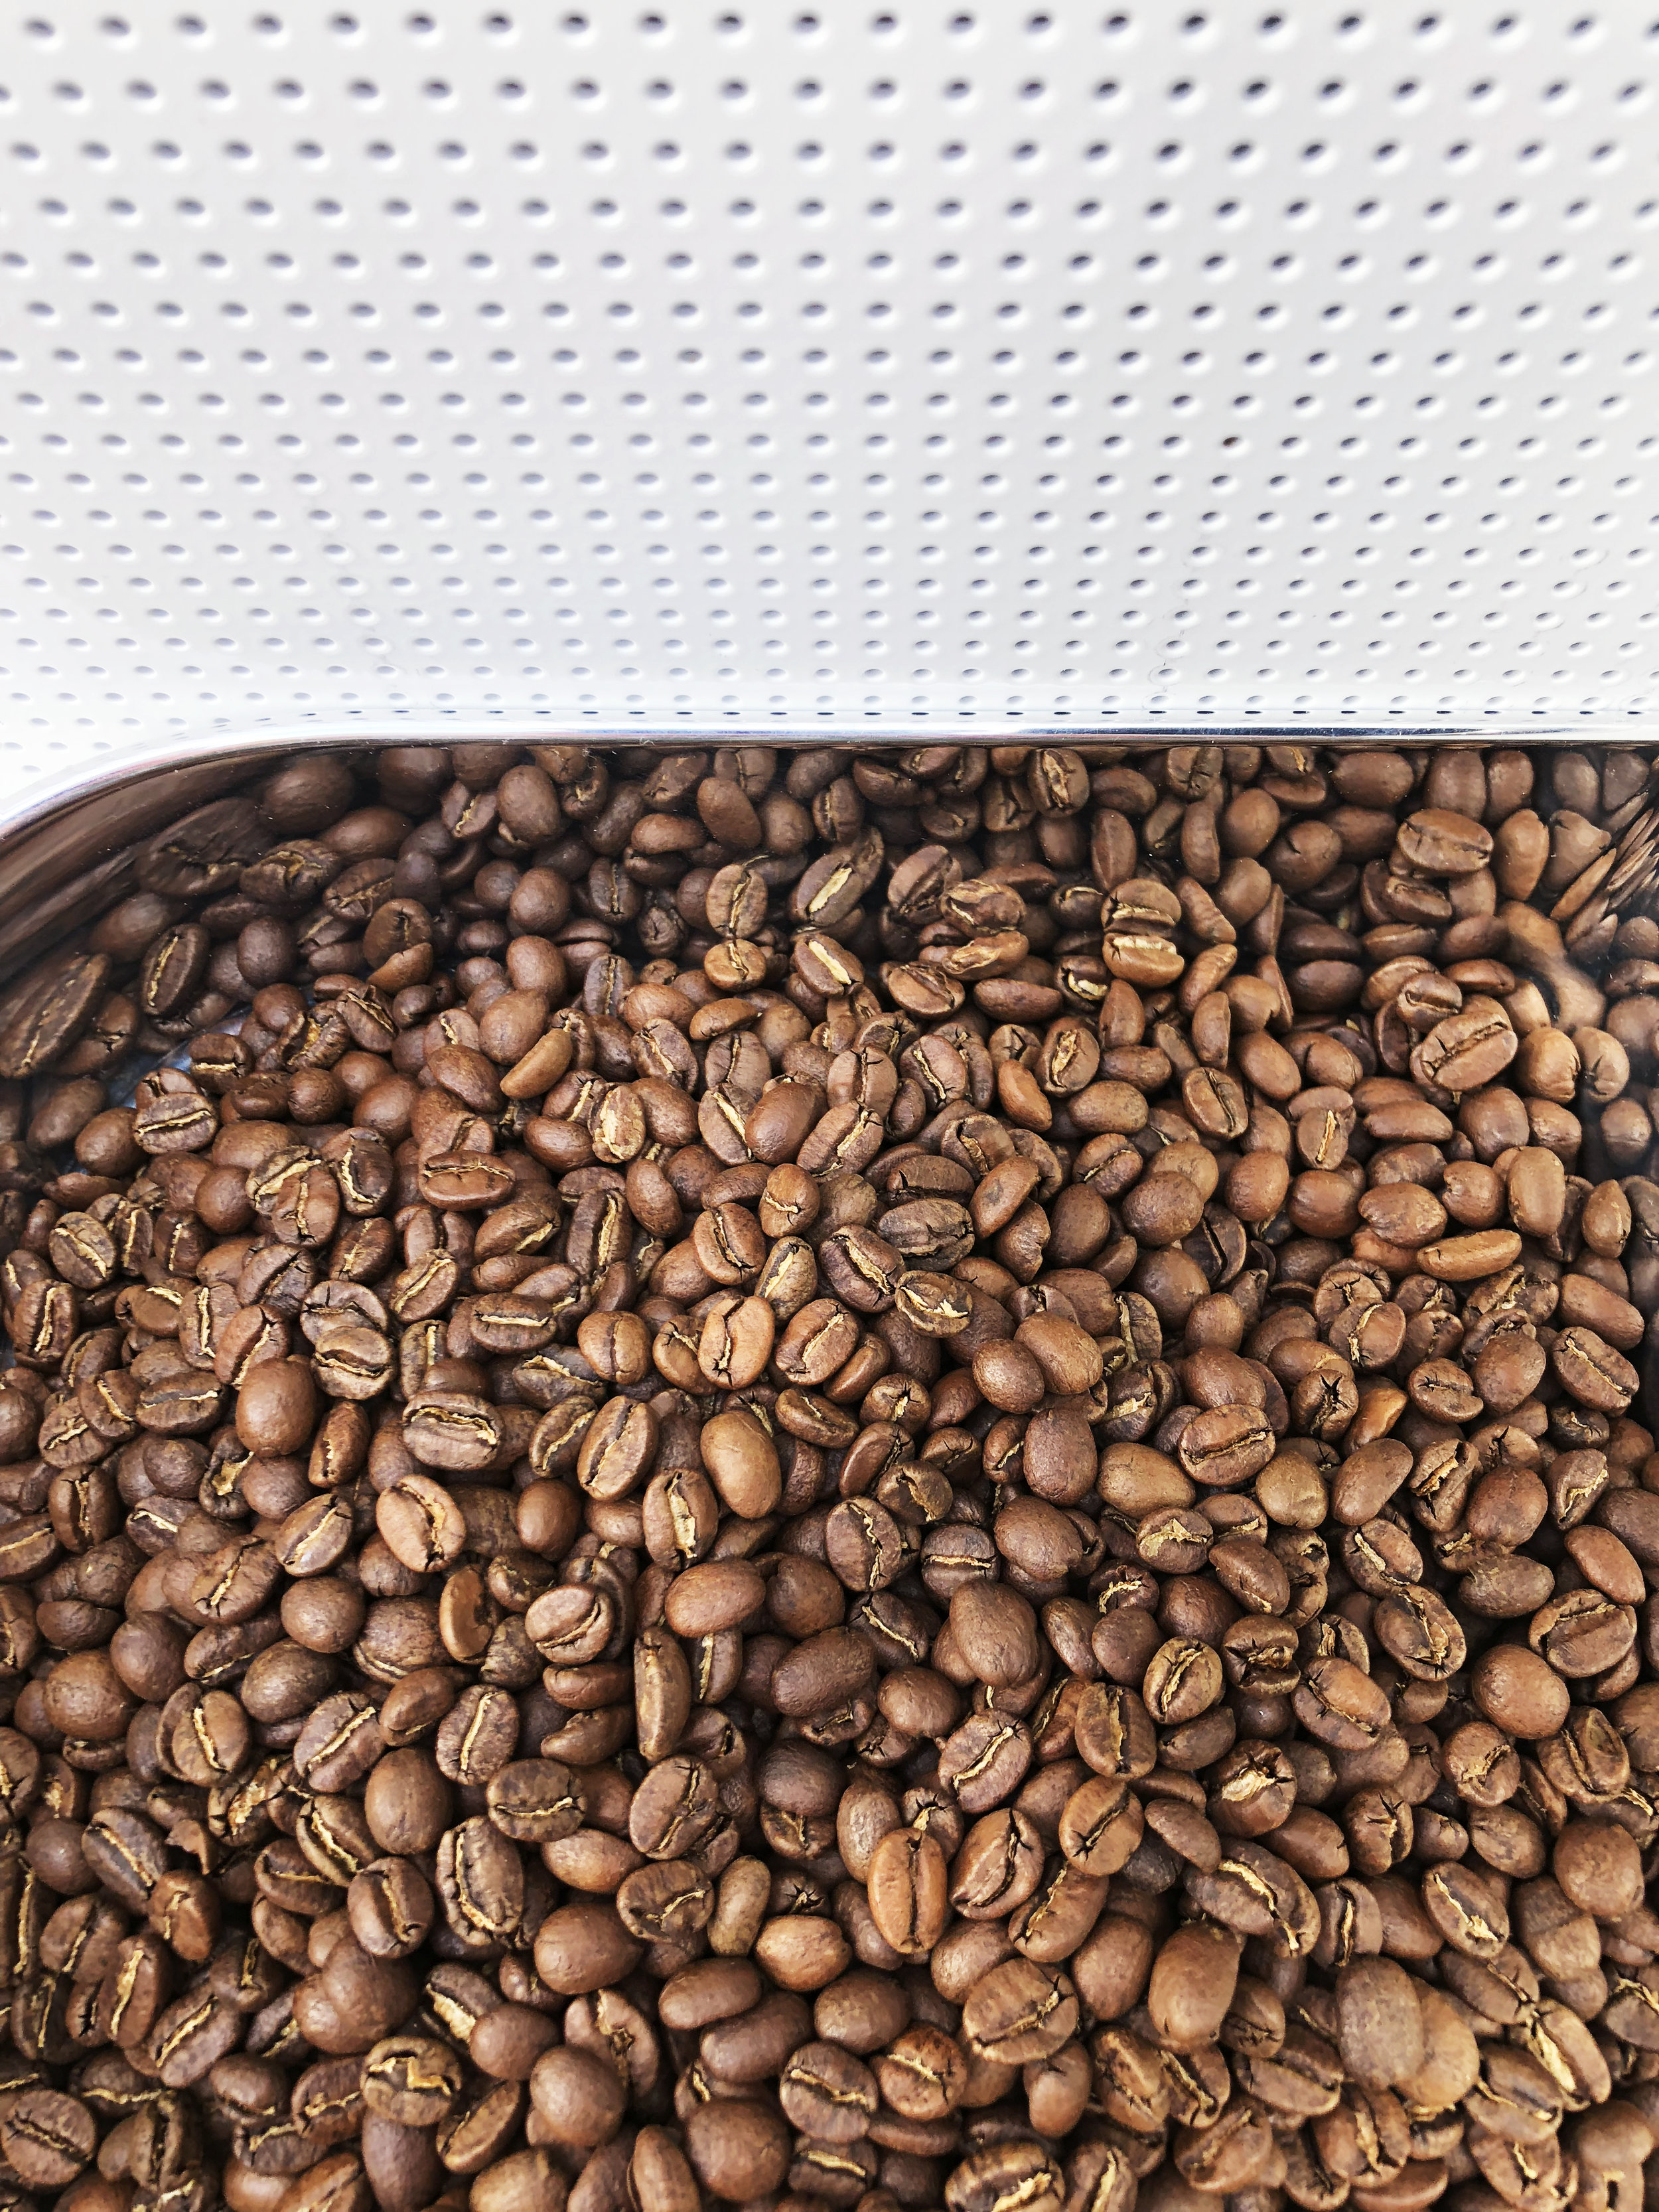 Better Freshness & Profitability - Our system will help you schedule when to roast and when to order more coffee.By simplifying the supply chain, you'll also benefit from better profits.Learn more ➝